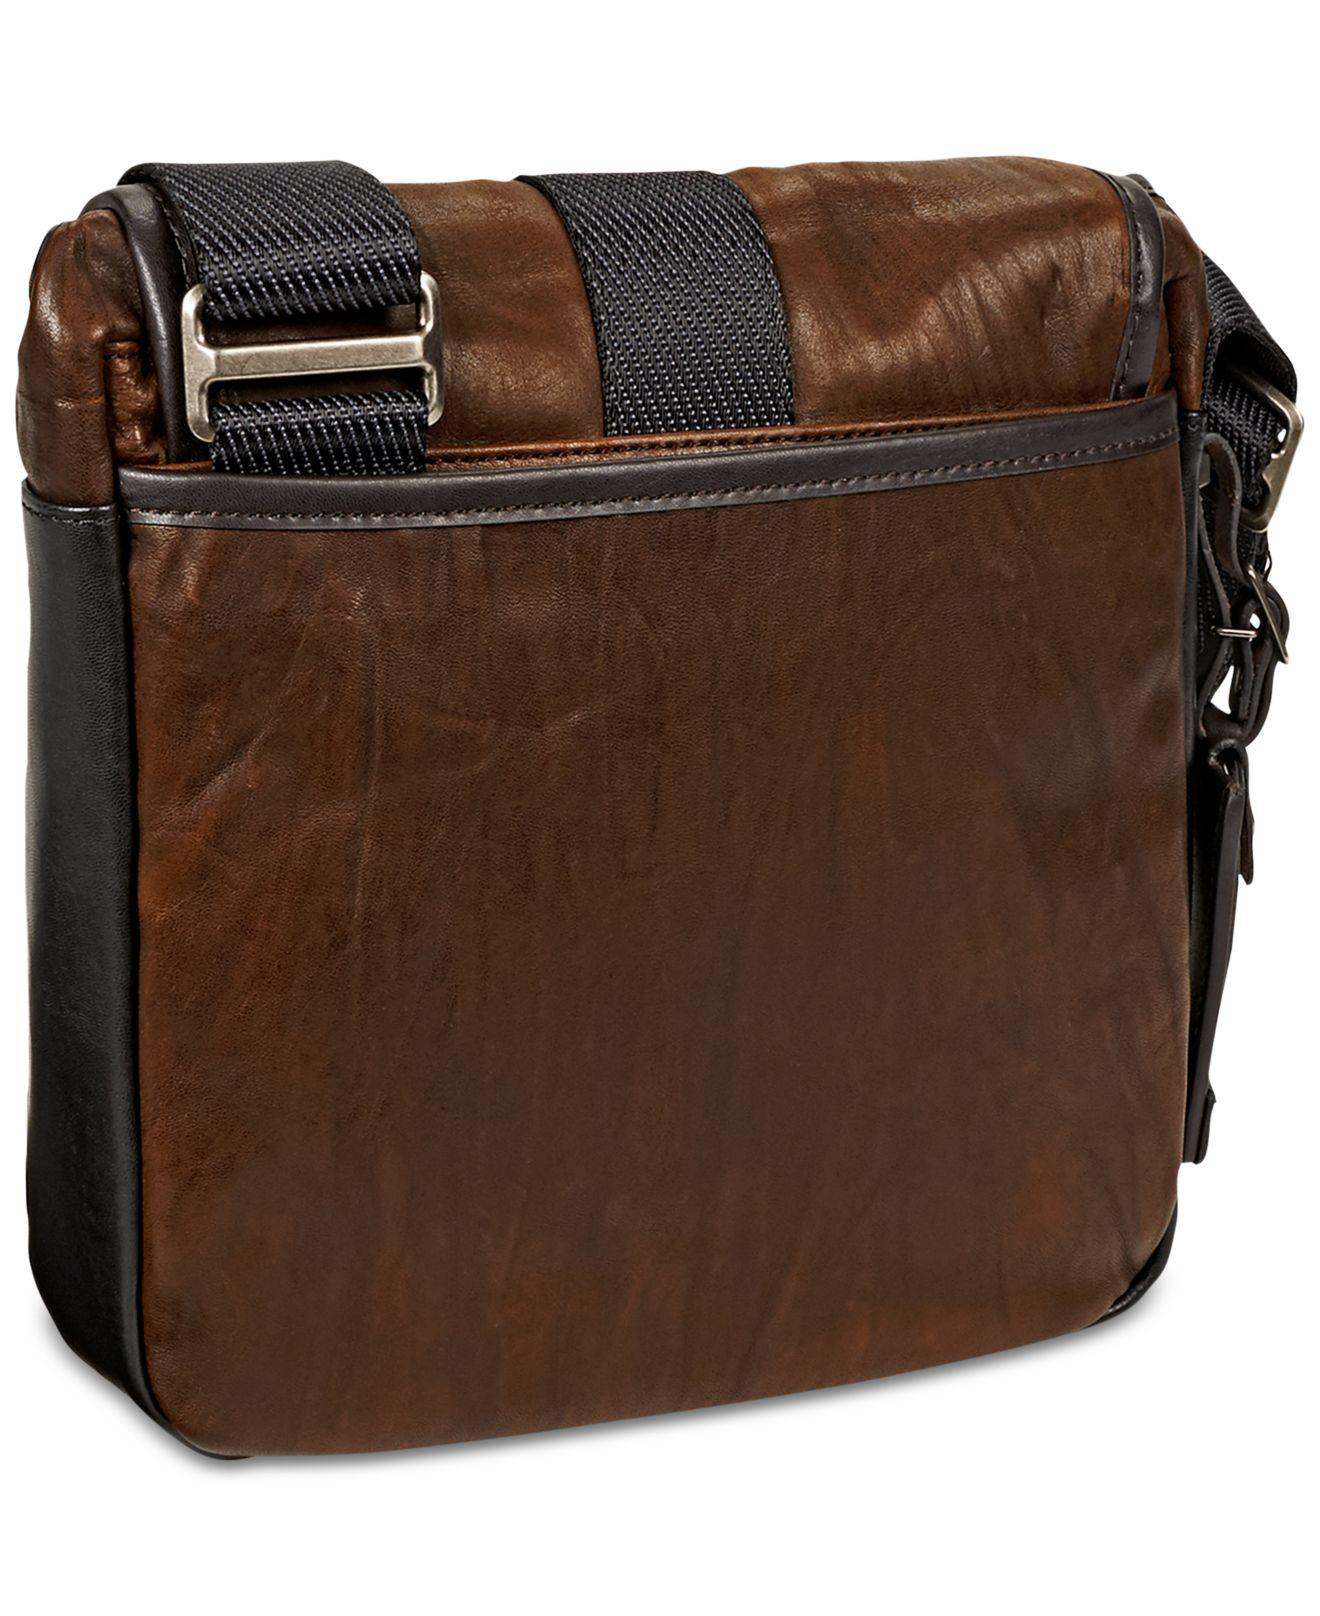 d8c4098813f8 Tumi - Brown Alpha Bravo - Barton Leather Crossbody Bag for Men - Lyst.  View fullscreen